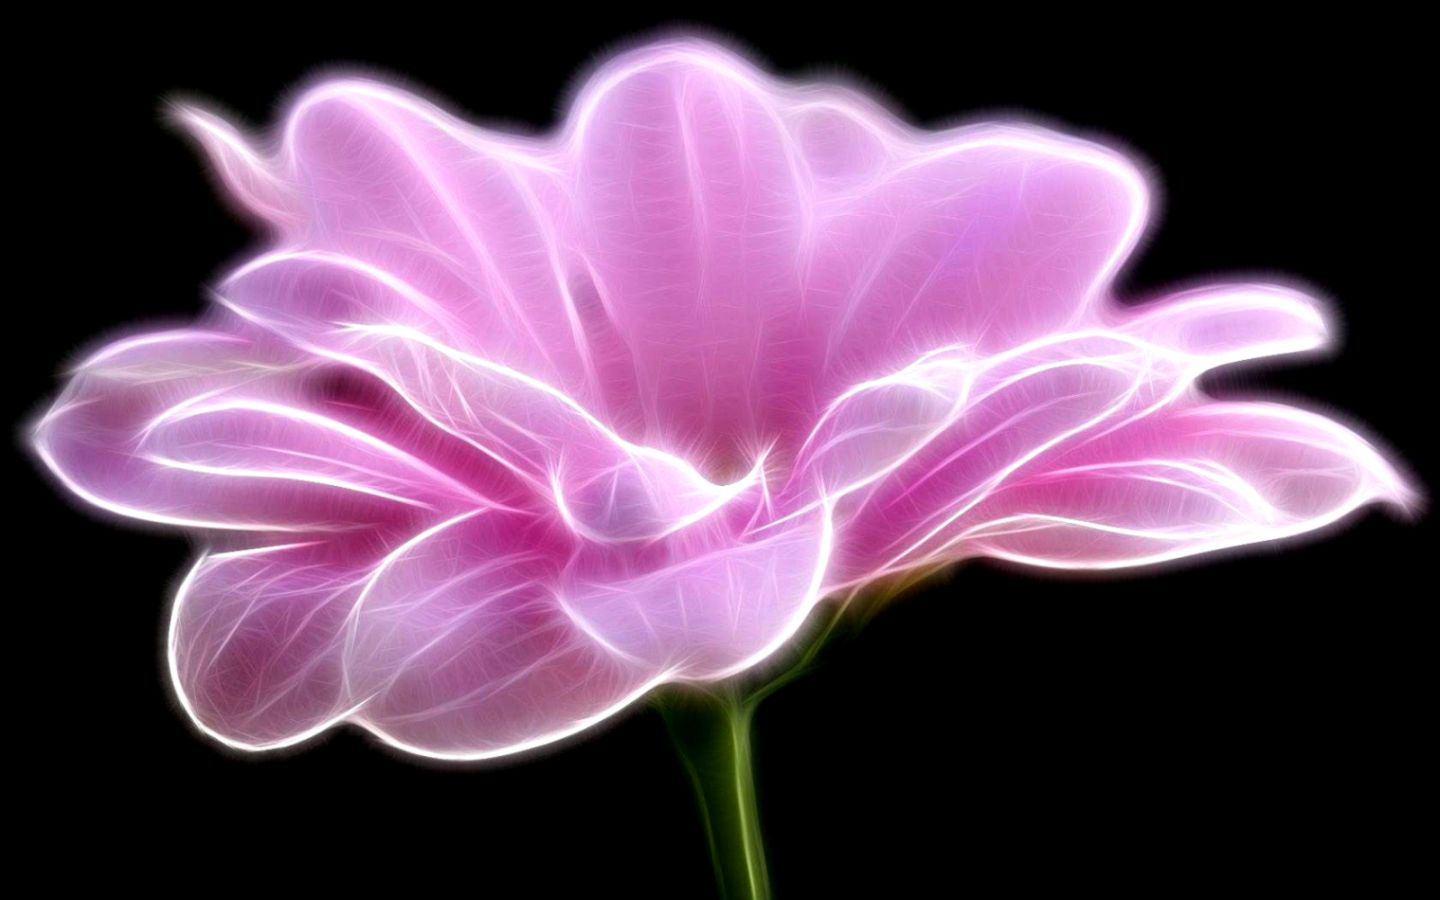 Black And Pink Flower Wallpaper Amazing Wallpapers